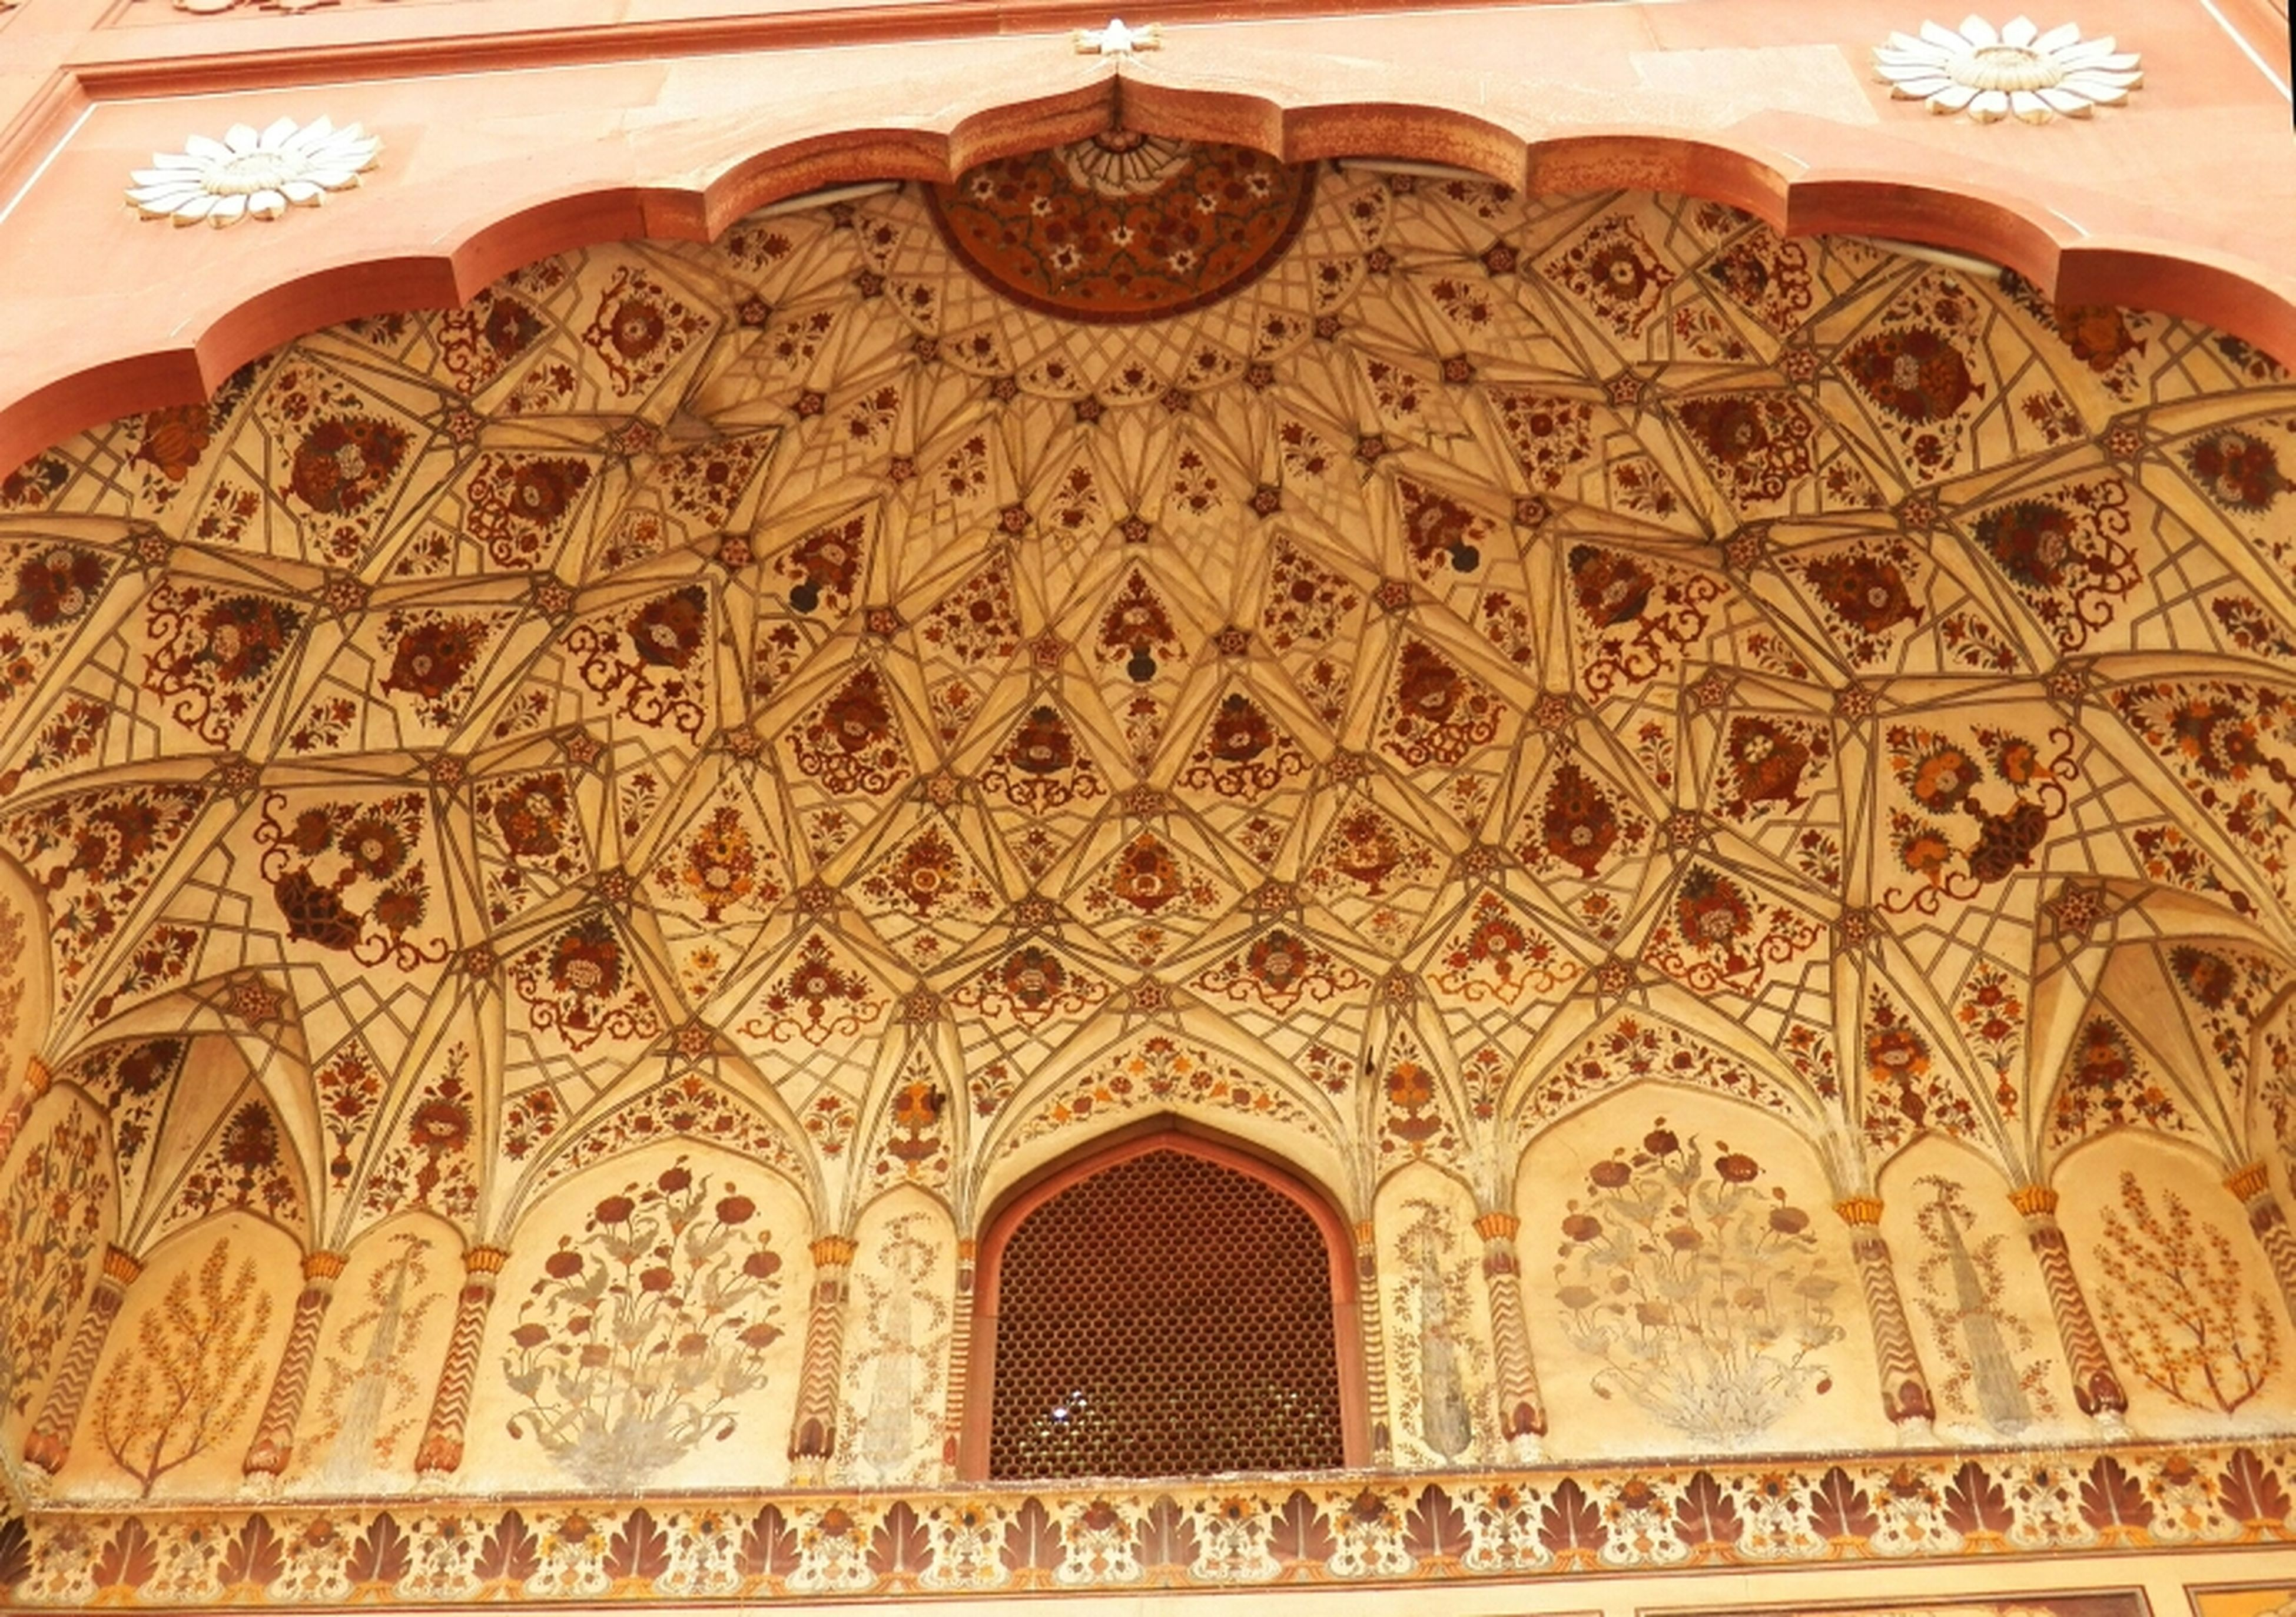 indoors, ornate, low angle view, design, ceiling, architecture, pattern, art and craft, place of worship, religion, built structure, famous place, architectural feature, arch, art, spirituality, creativity, travel destinations, carving - craft product, tourism